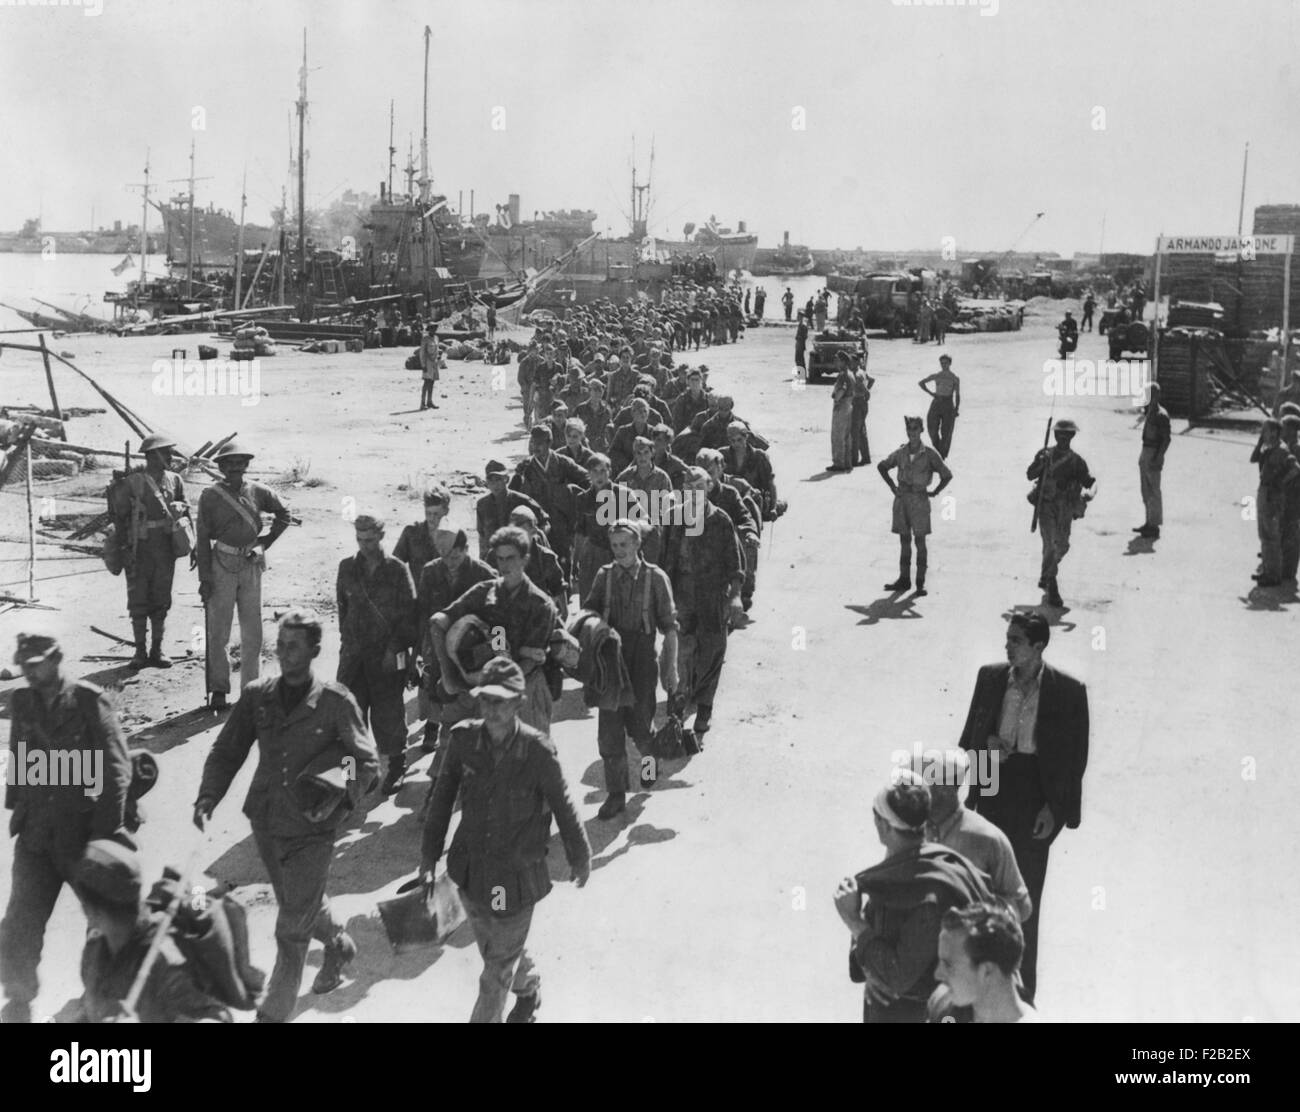 German prisoners, were captured on seacoast town in Italy, on their way to a POW stockade. Photo was made when Navy - Stock Image